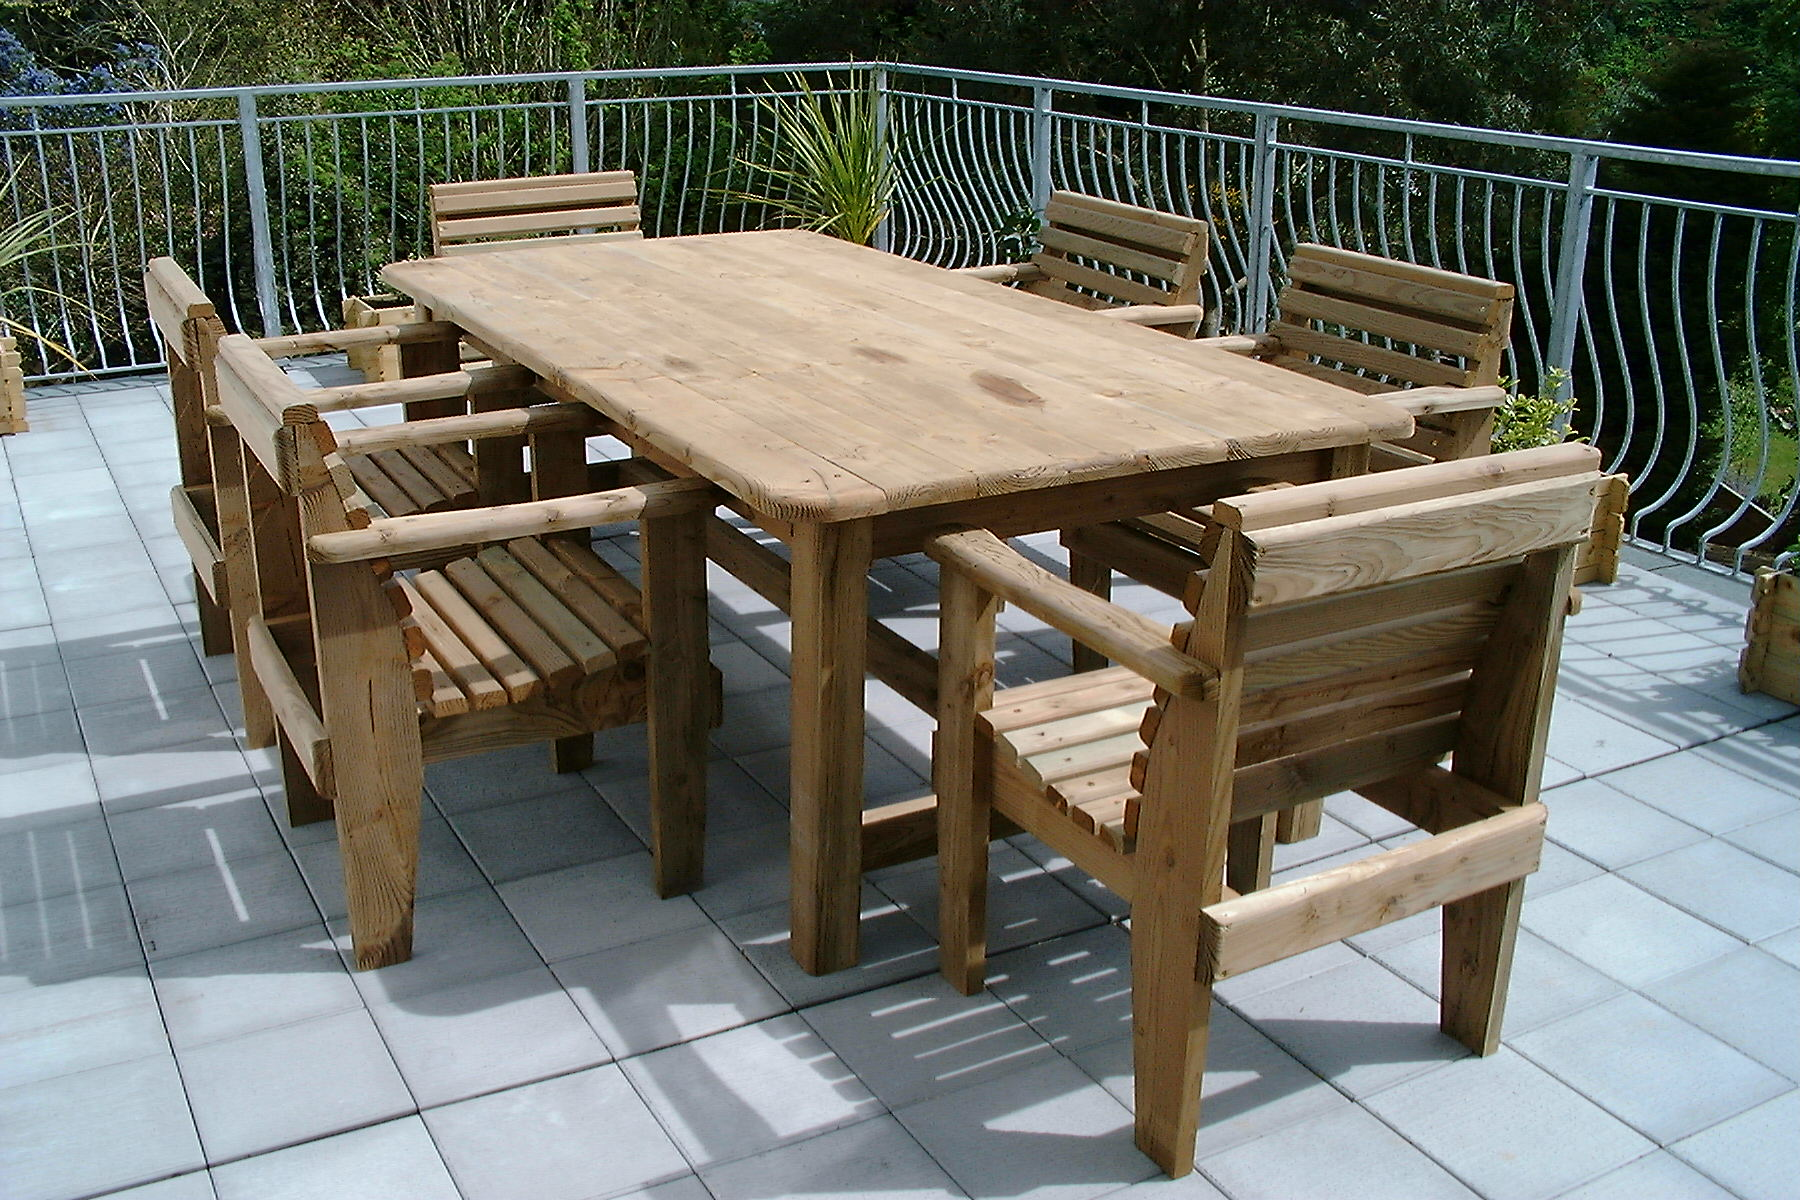 Garden Furniture : 8X4TABLECHAIRS03 from www.trurosawmills.com size 1800 x 1200 jpeg 491kB